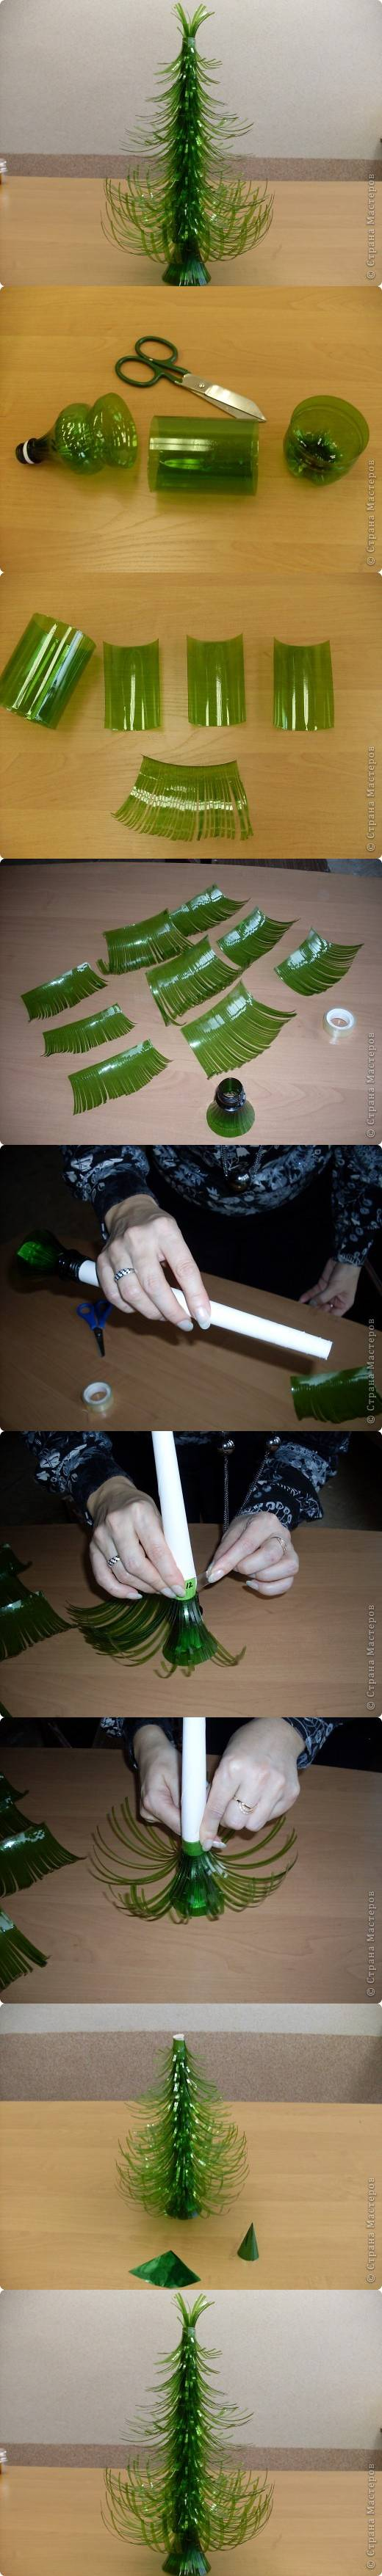 diy-plastic-bottle-christmas-trees